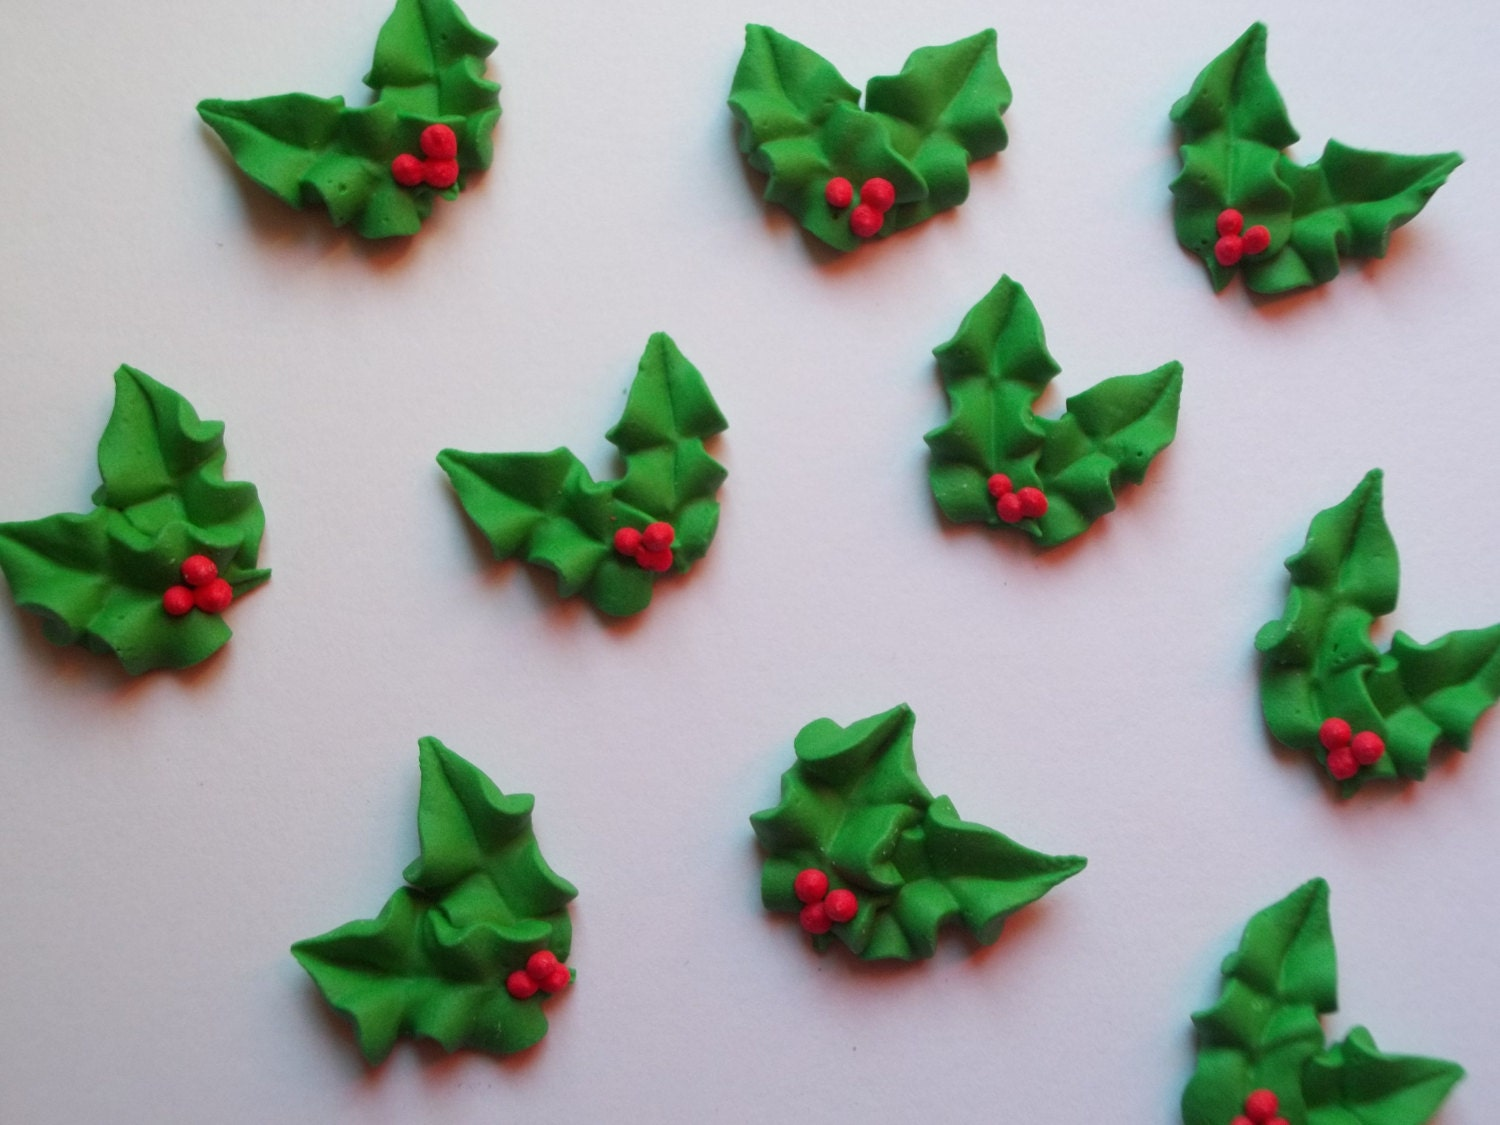 Edible Cake Decorations Holly Leaves : Unavailable Listing on Etsy